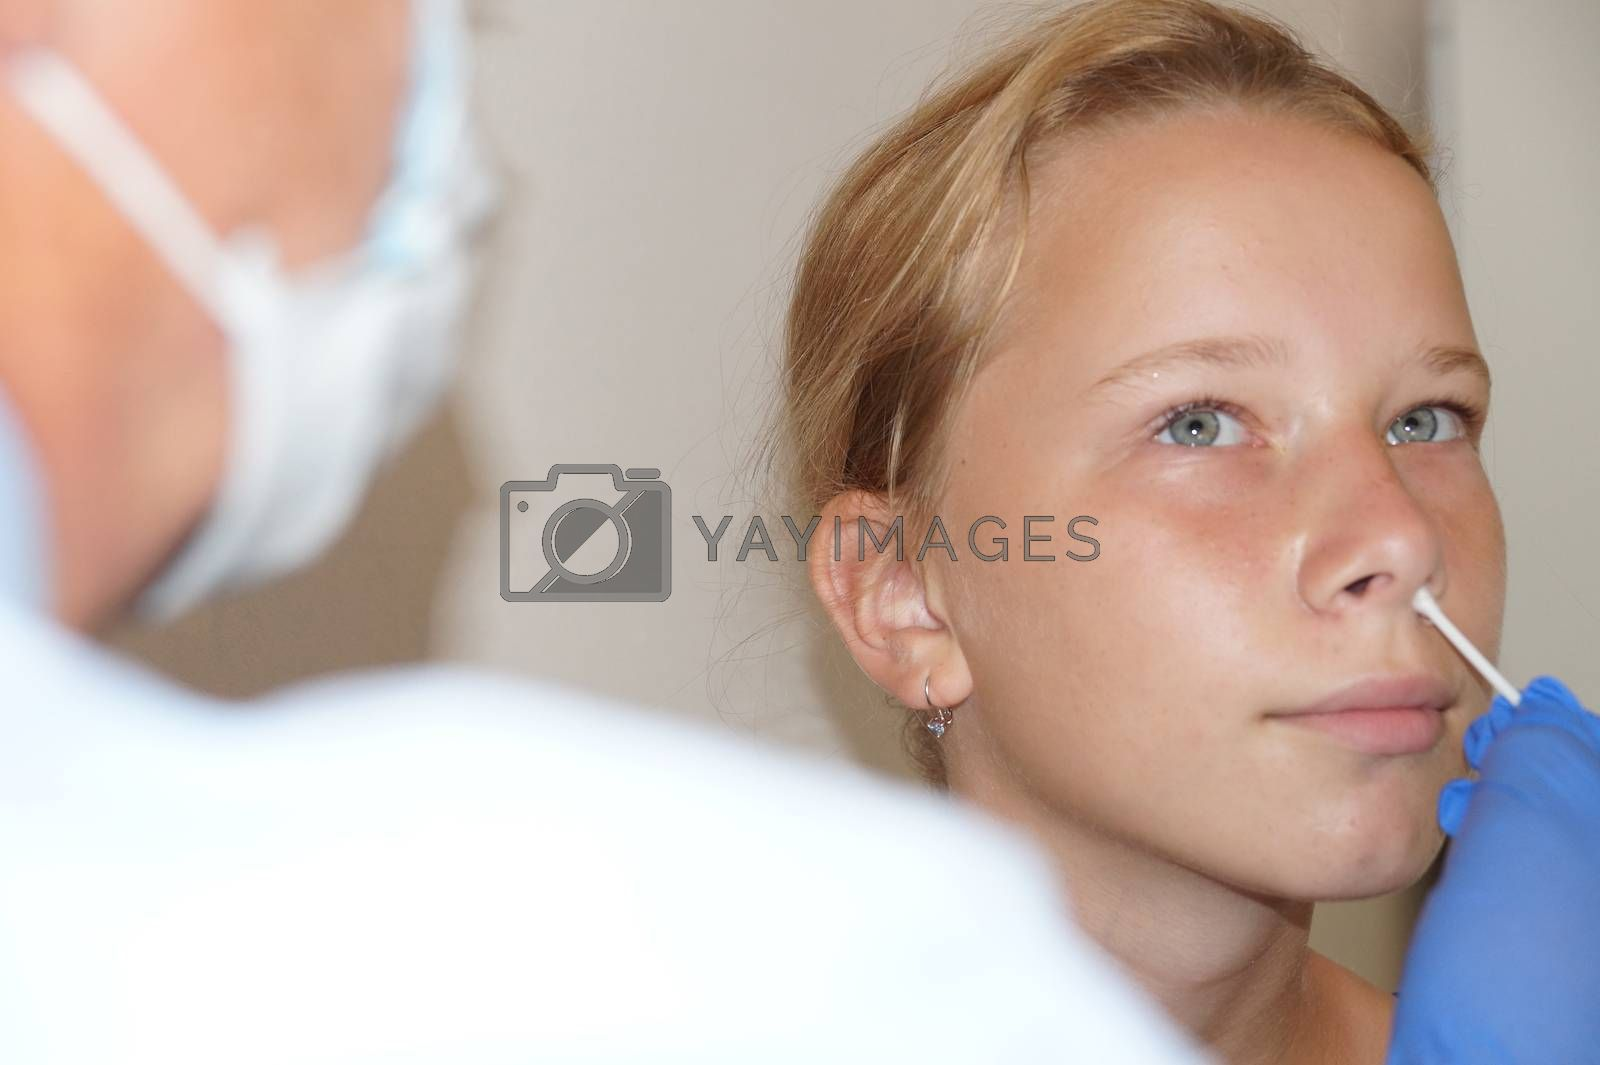 the doctor takes a test for coronavirus from the girl's nose.